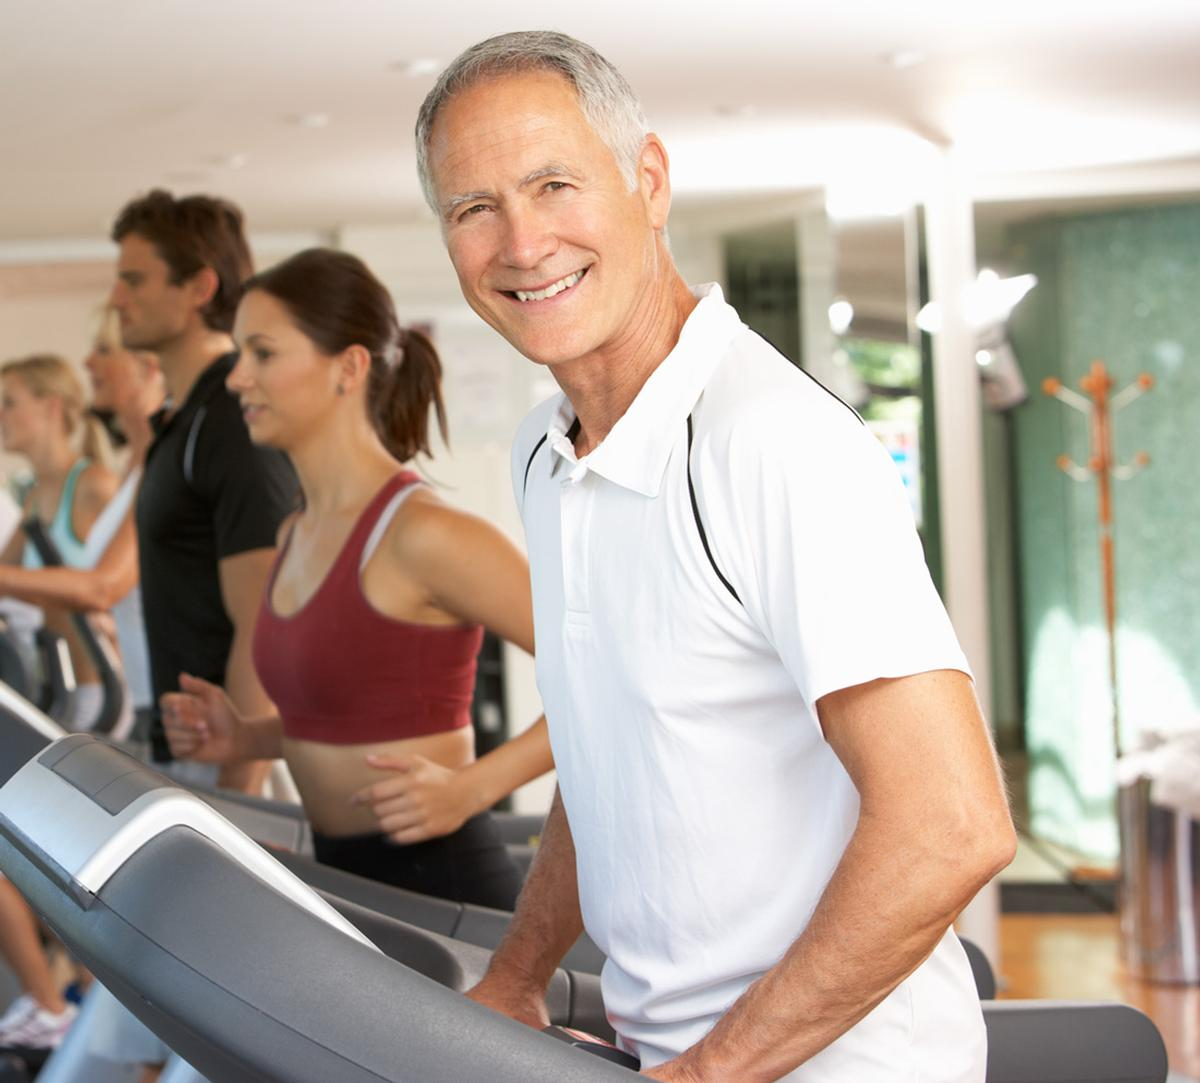 45% of women and 33% of men are not active enough for good health